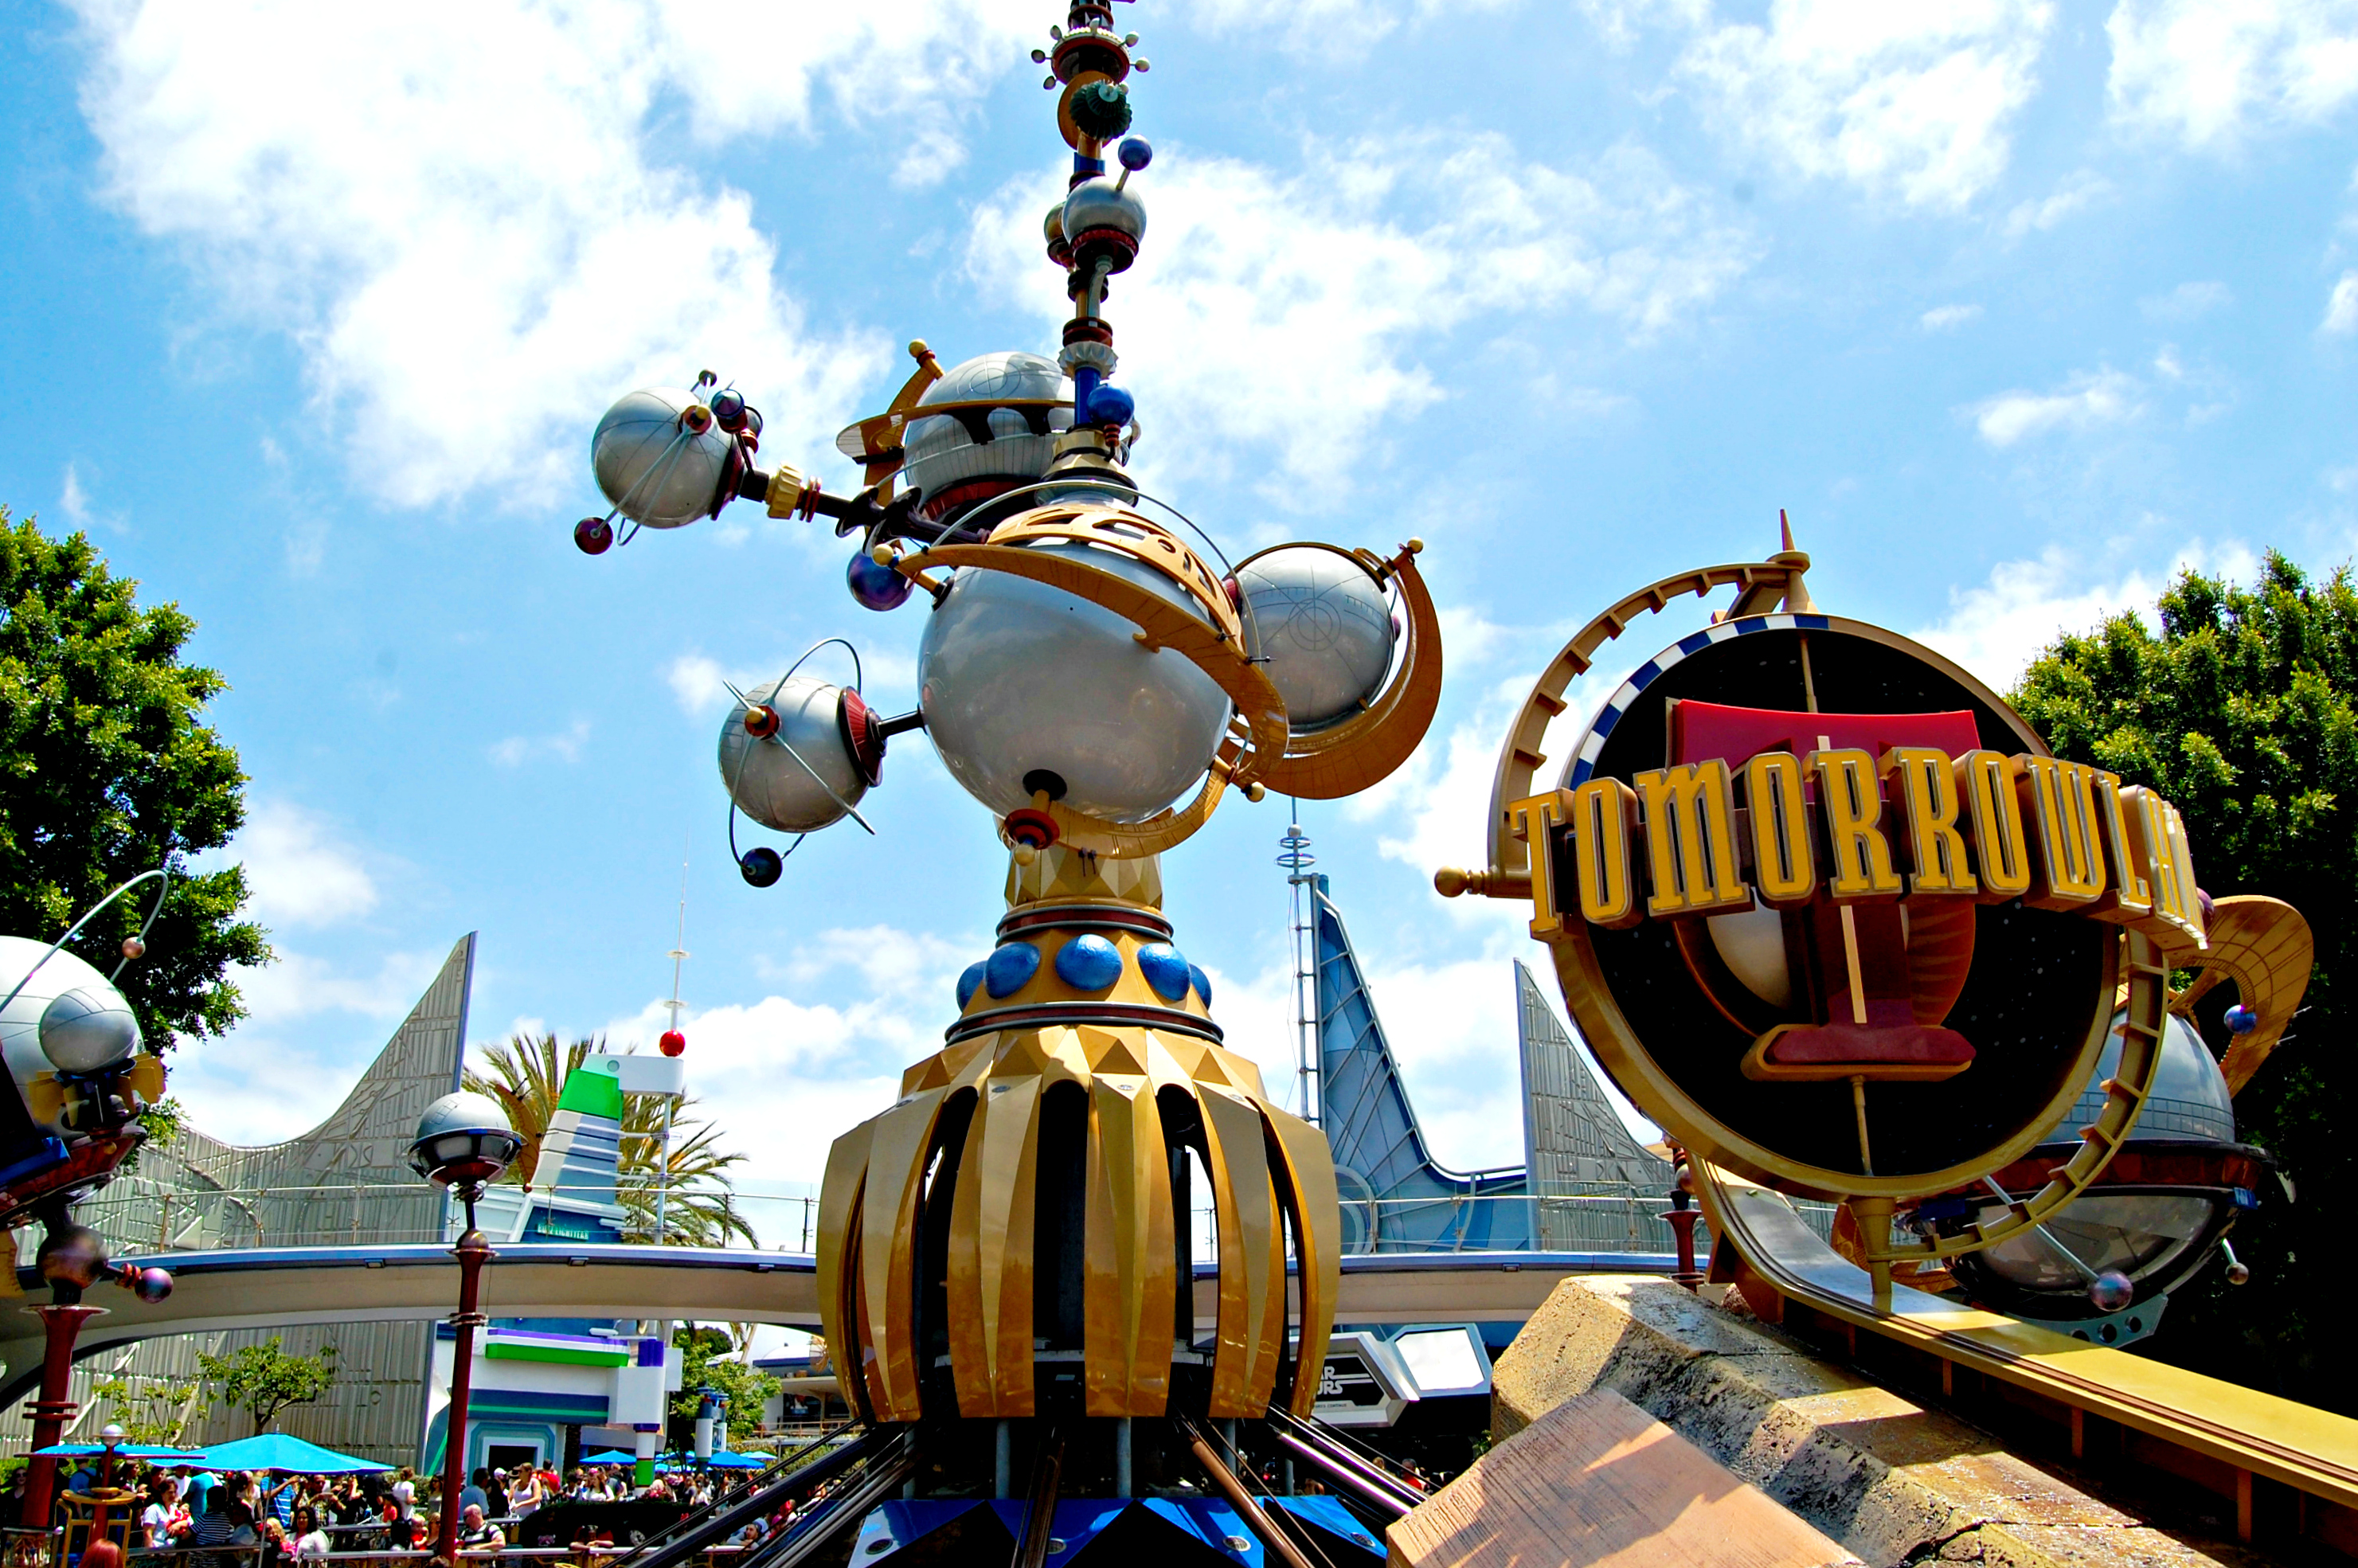 Disneyland's version of Tomorrowland